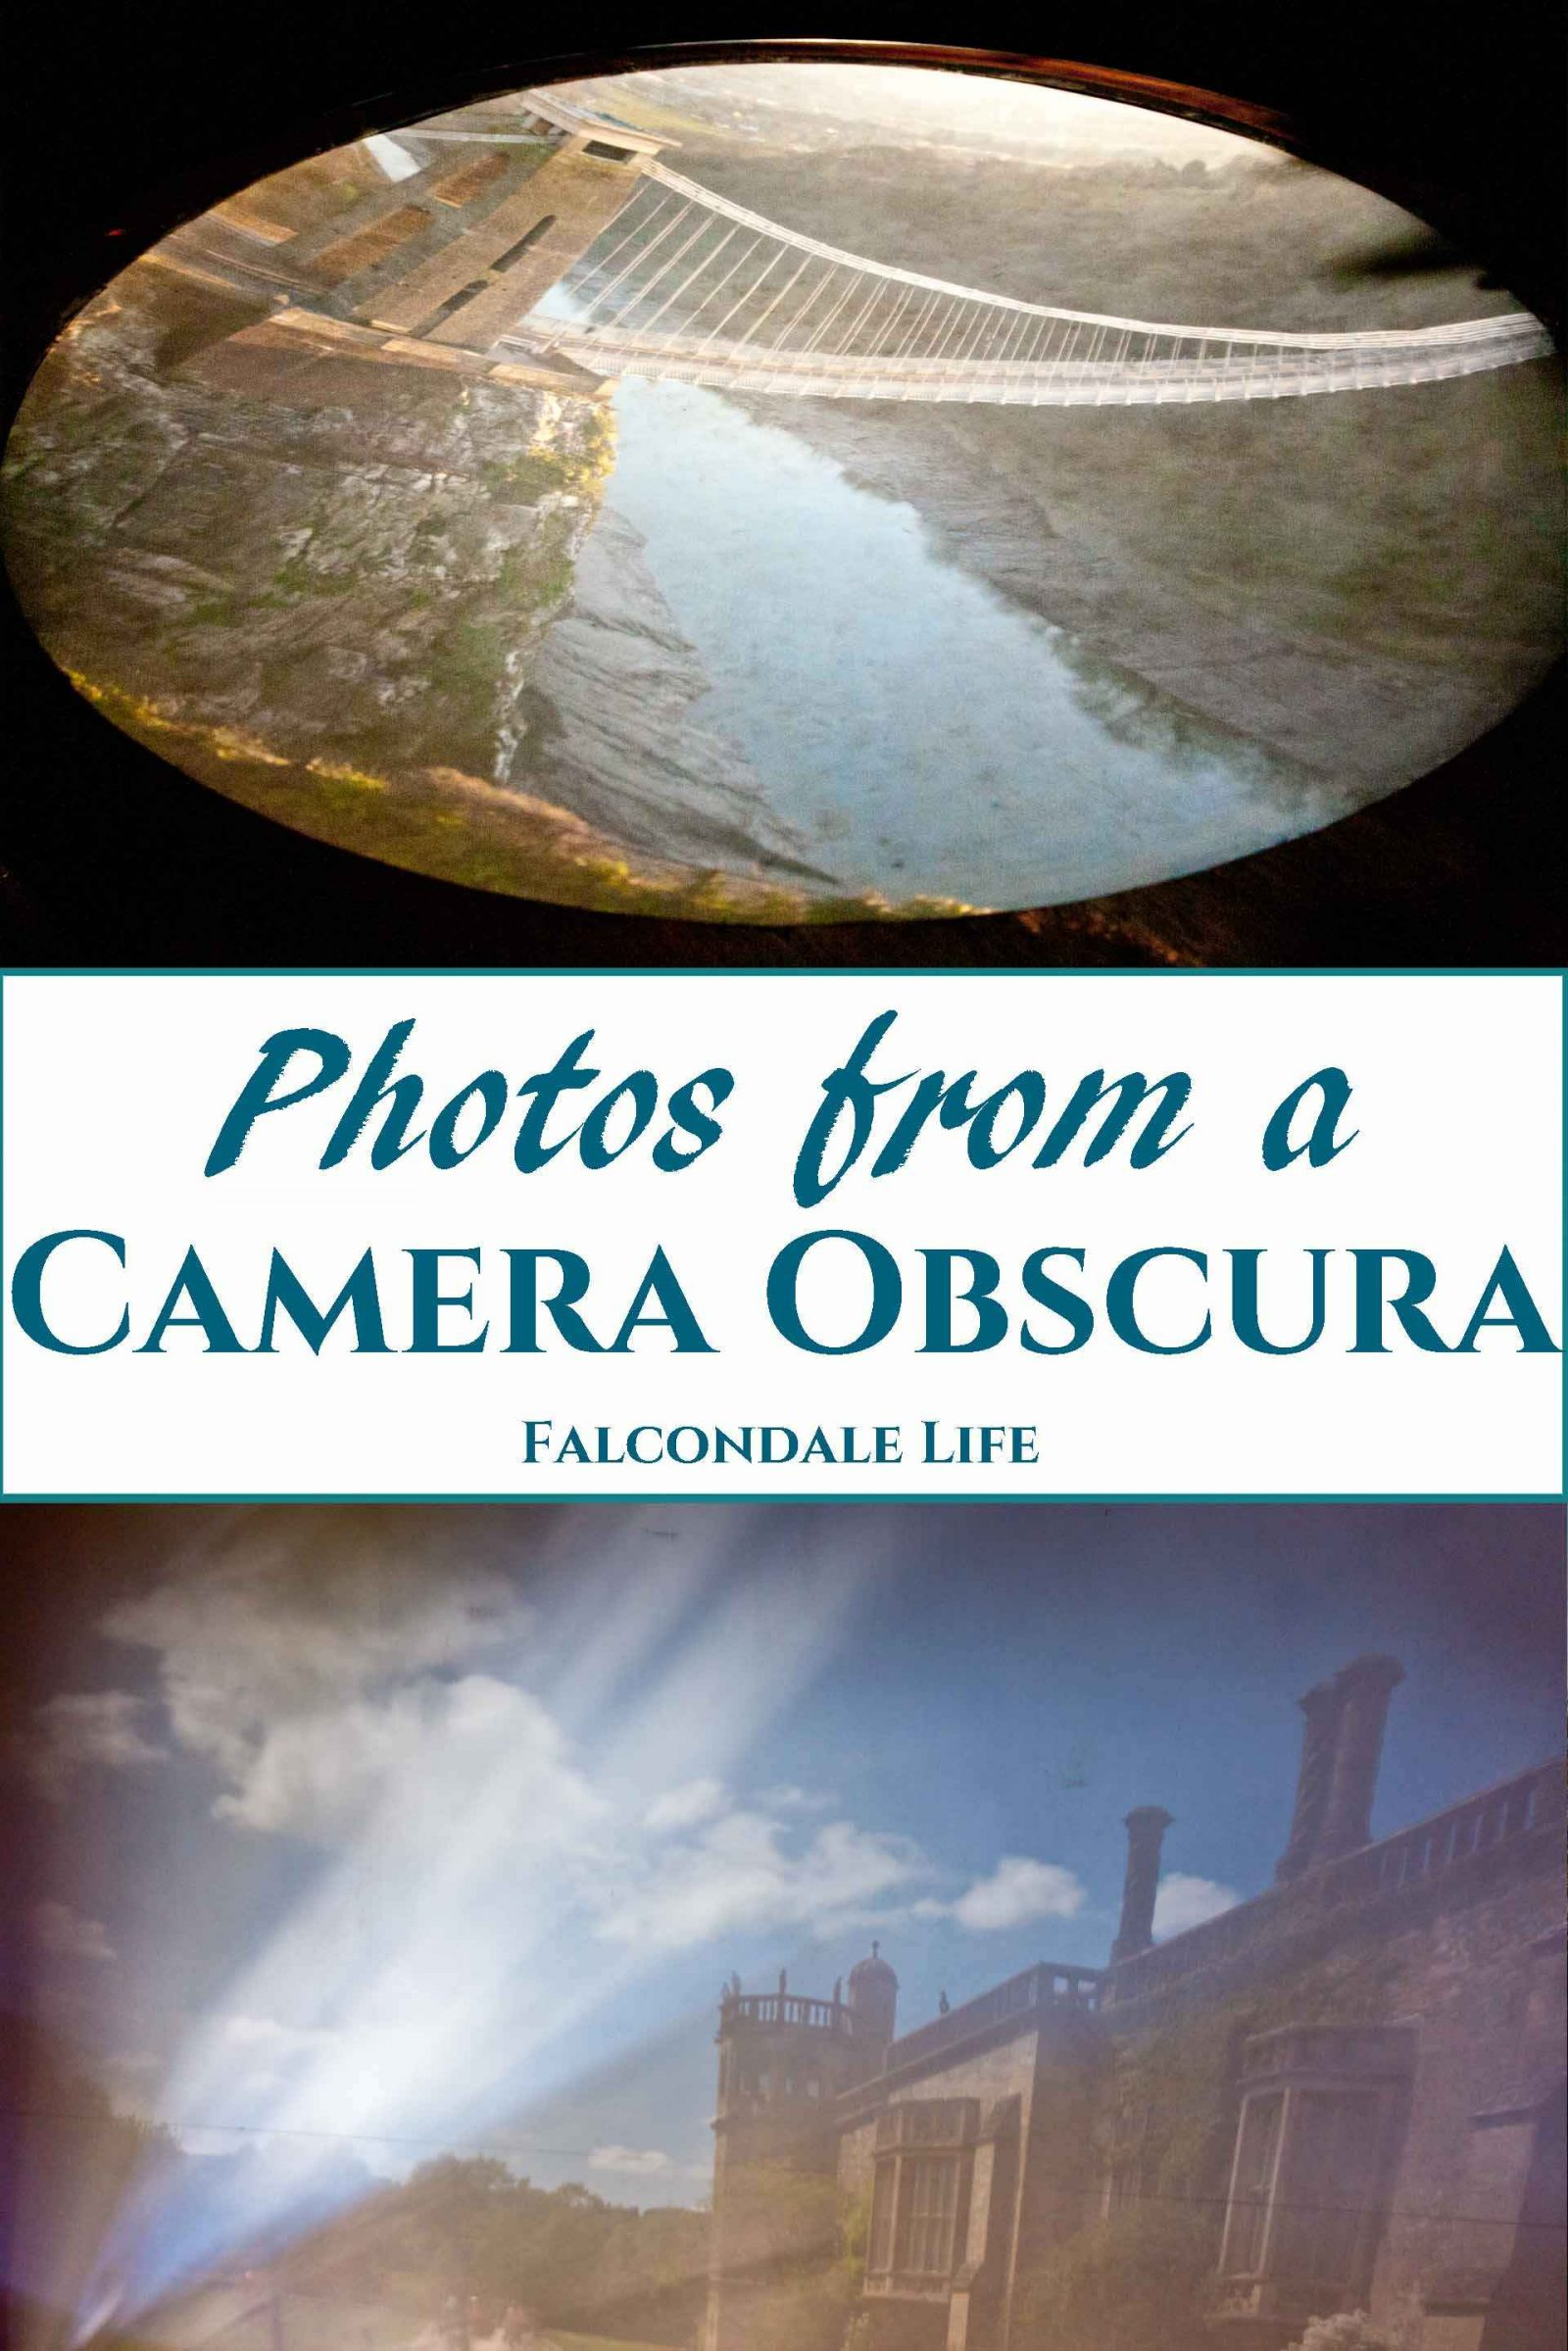 Photos from a Camera Obscura